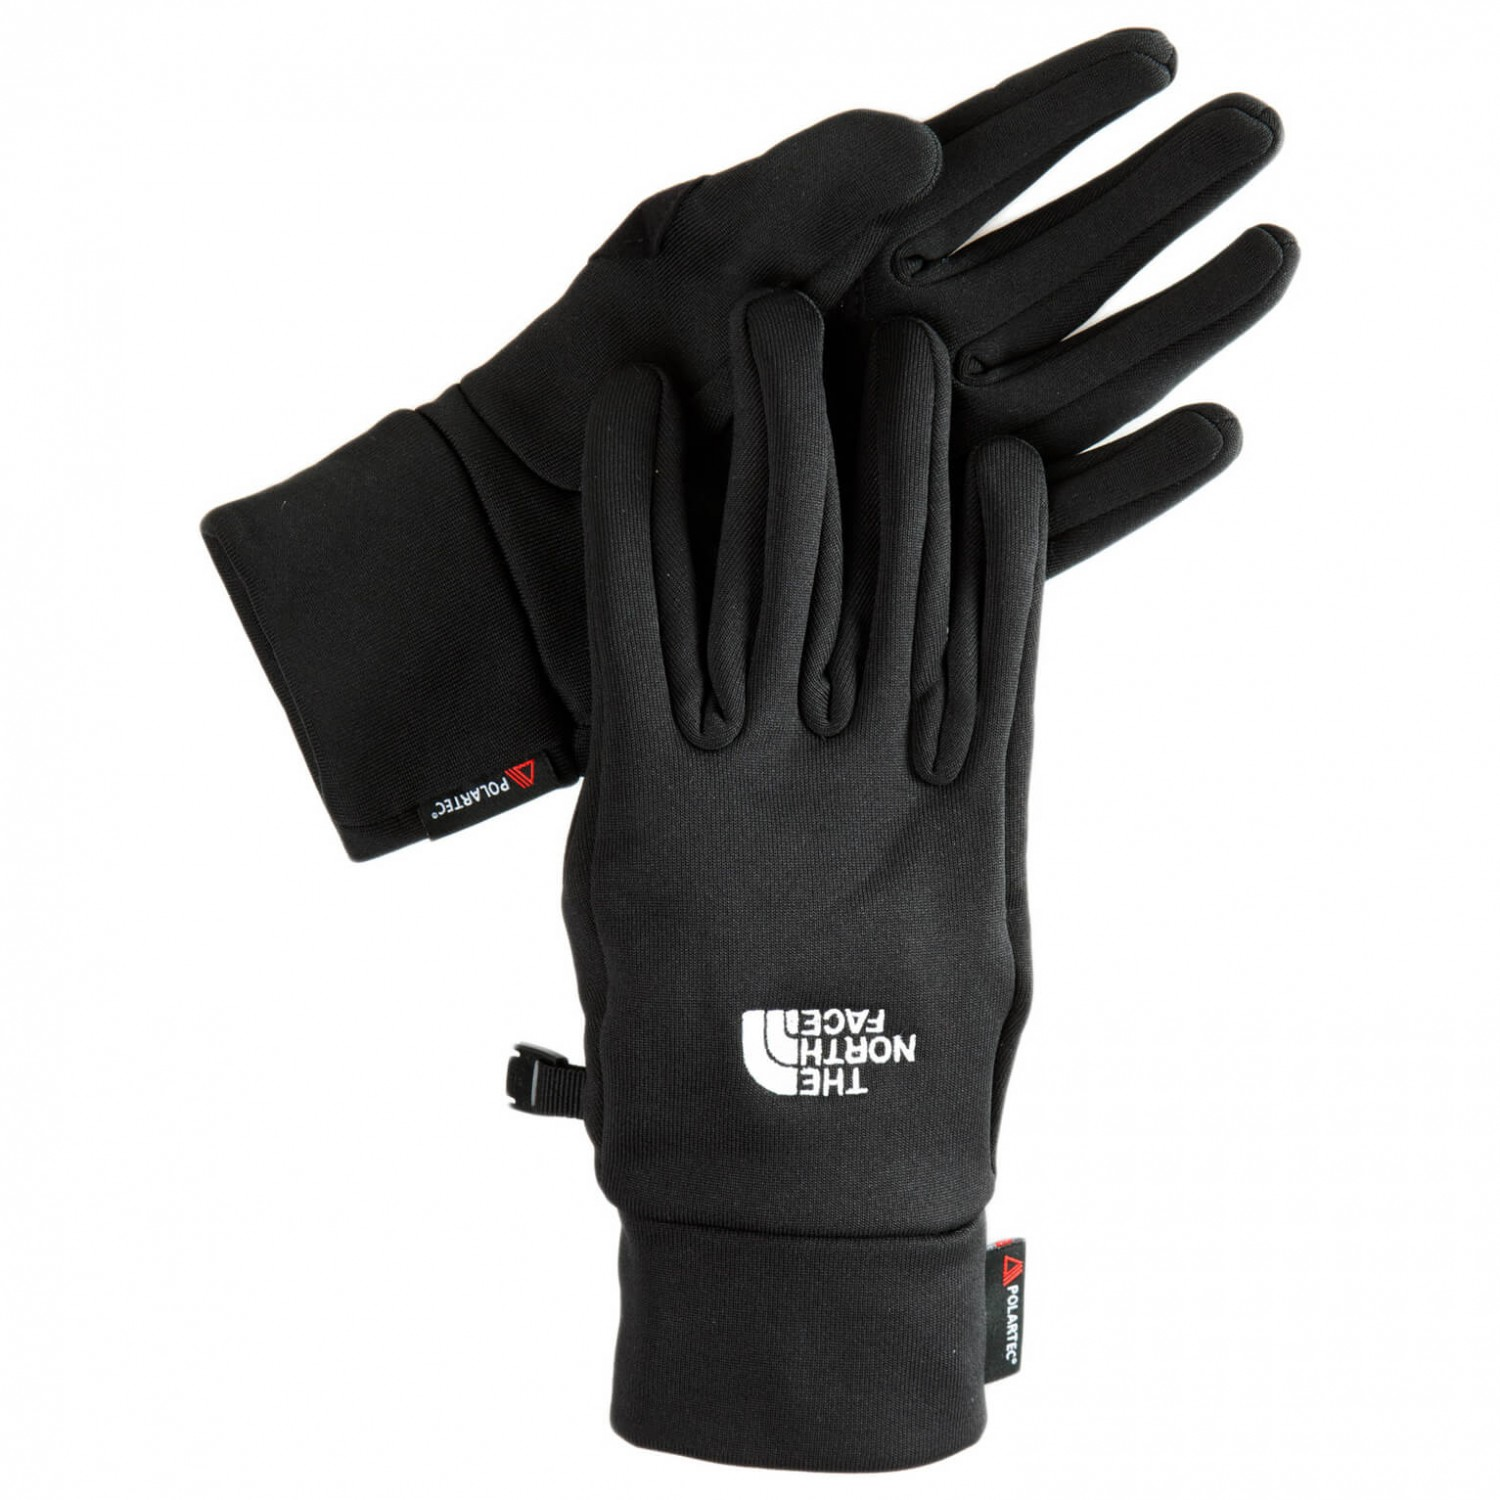 North face stretch gloves